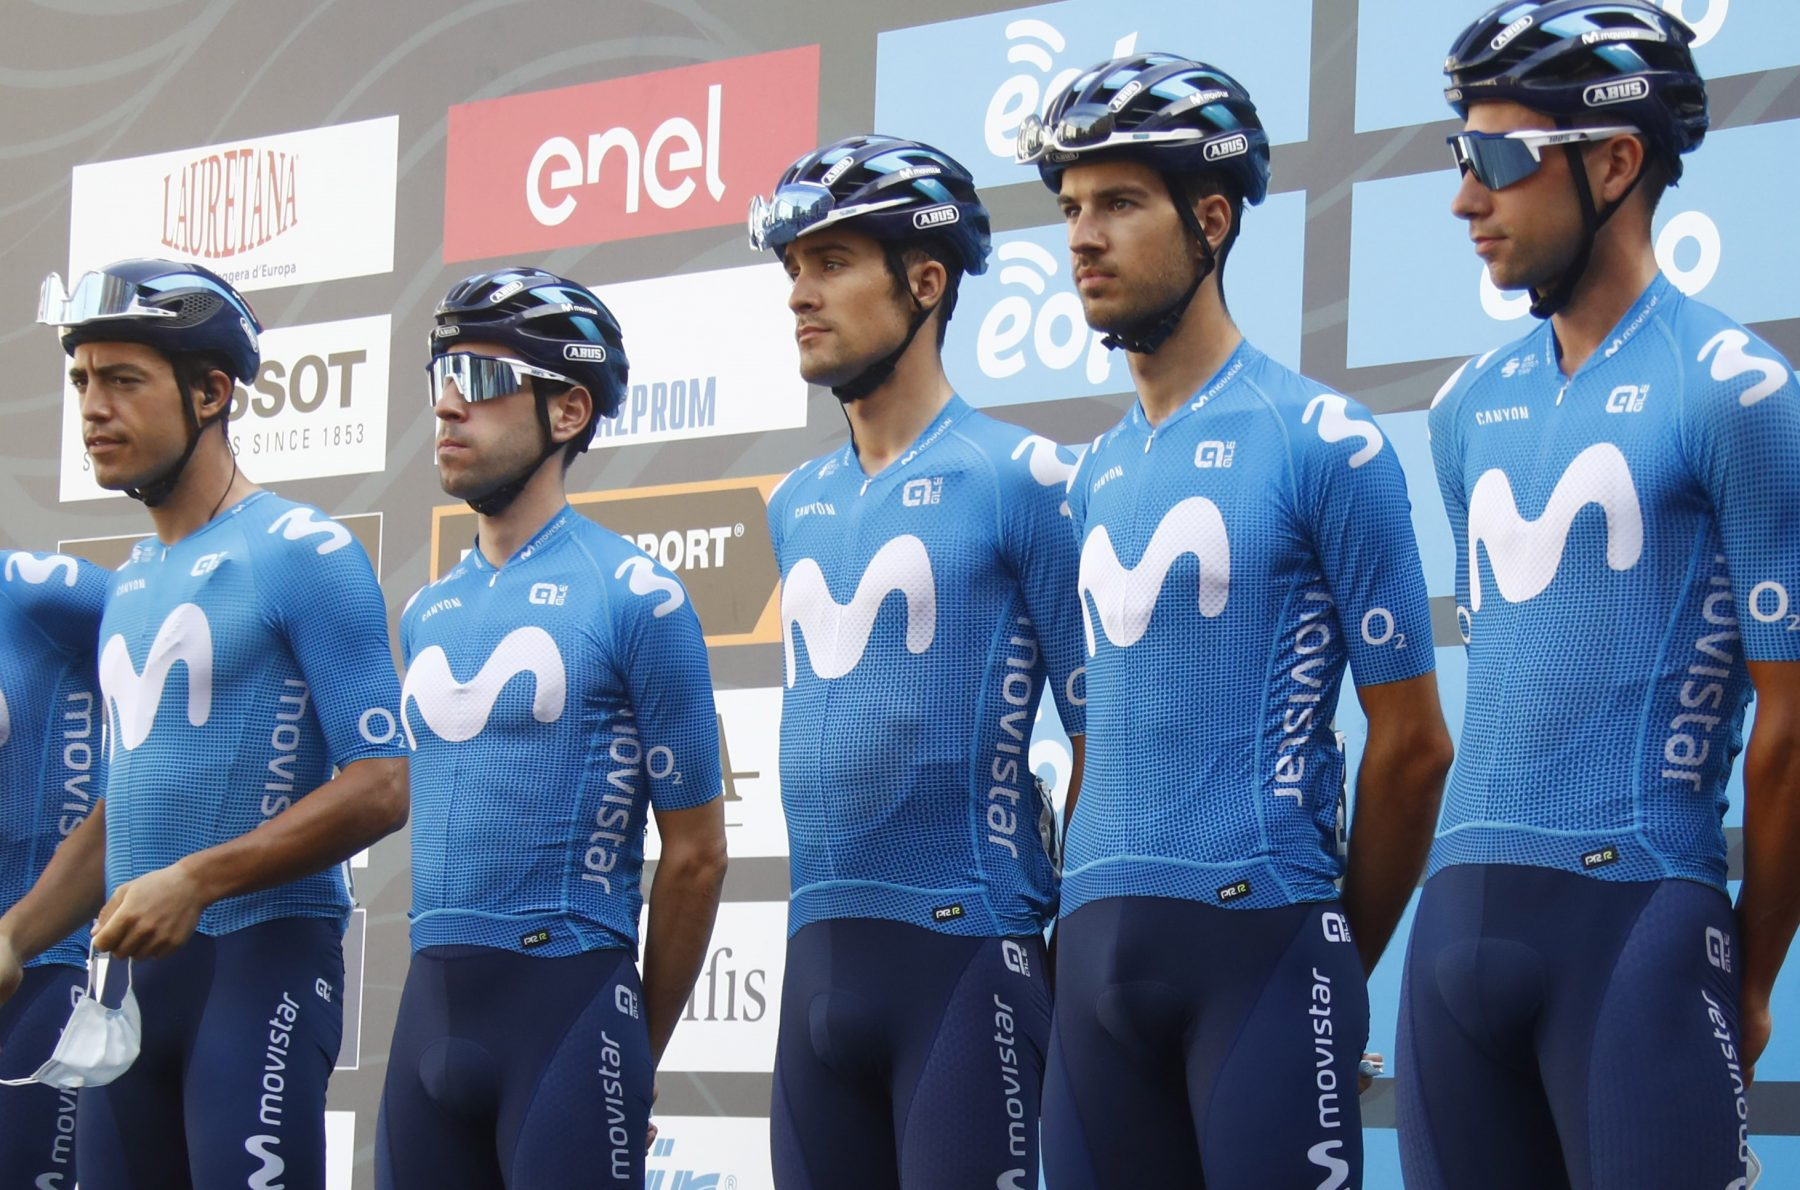 Imagen de la noticia 'Movistar Team looking for opportunities at 2020 Giro'